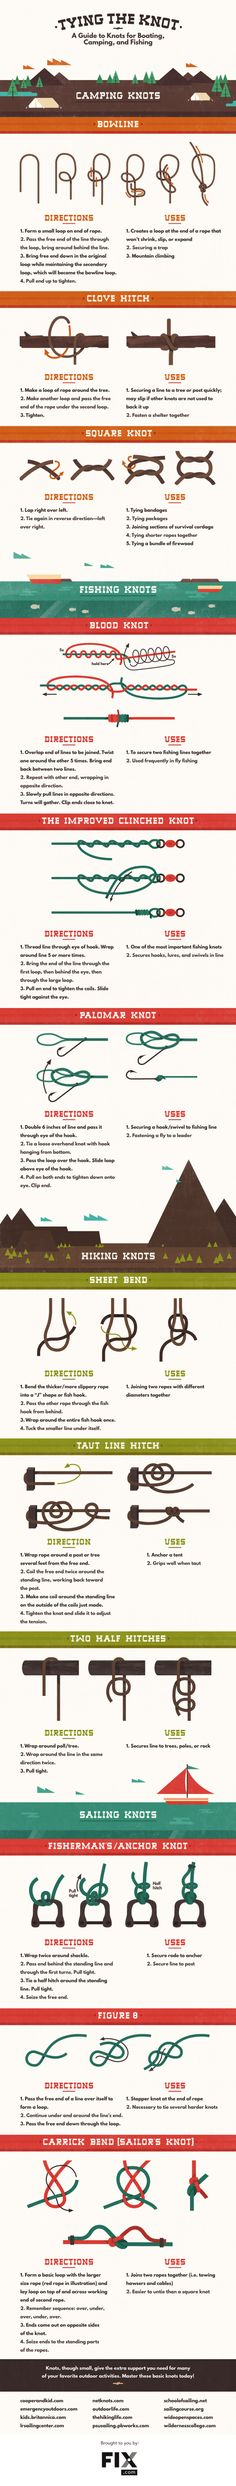 12 must-know knots for camping, fishing, backpacking and more!